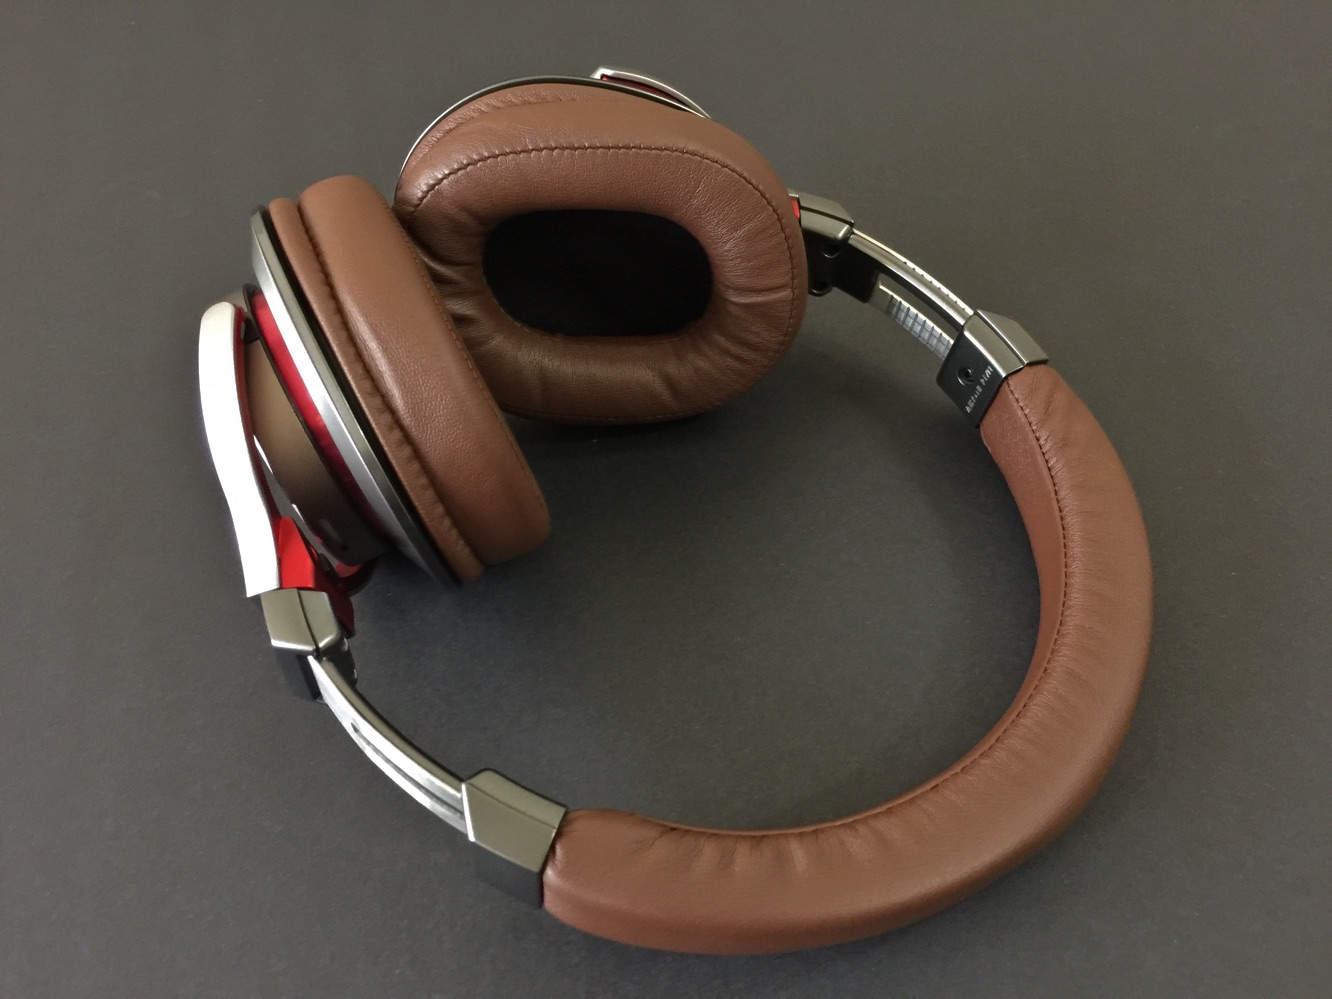 Review: Audio-Technica ATH-MSR7 SonicPro Over-Ear Headphones 5